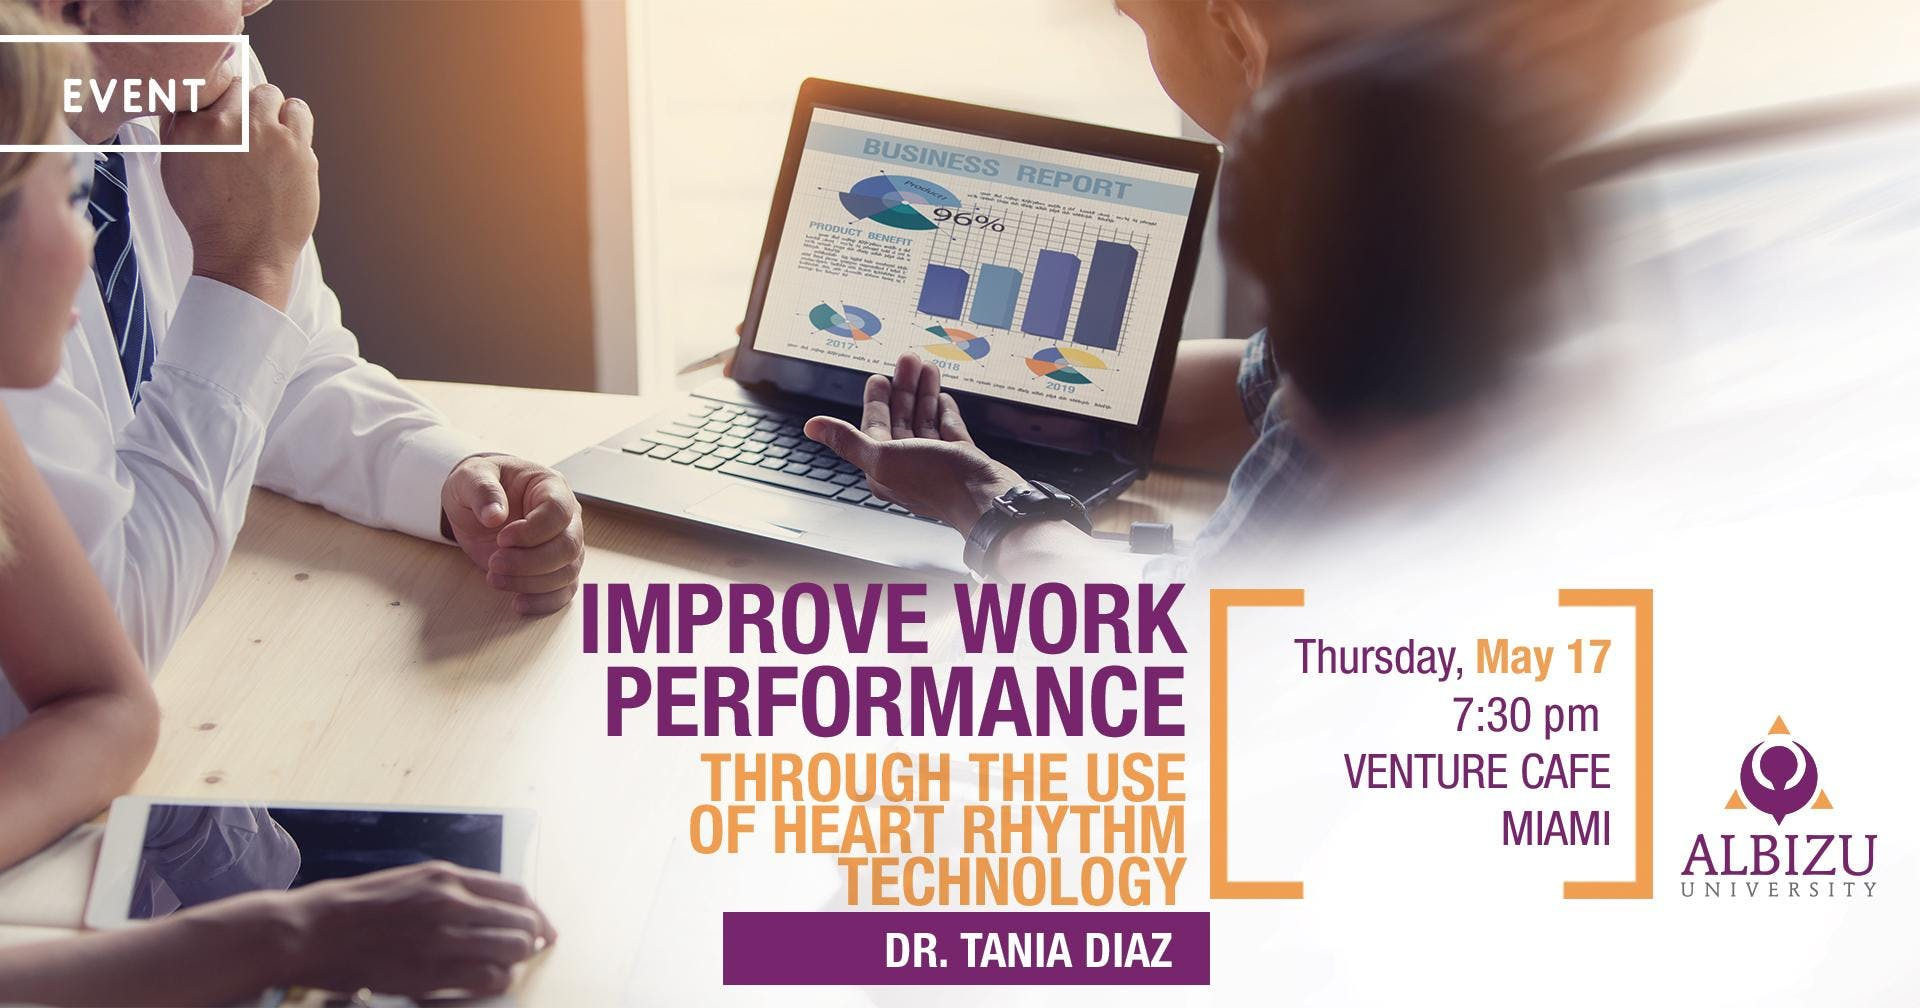 improving work performance Ways to improve work performance is an article which releases the best ways and tips to improve performance at work ways to improve work performance is an article.